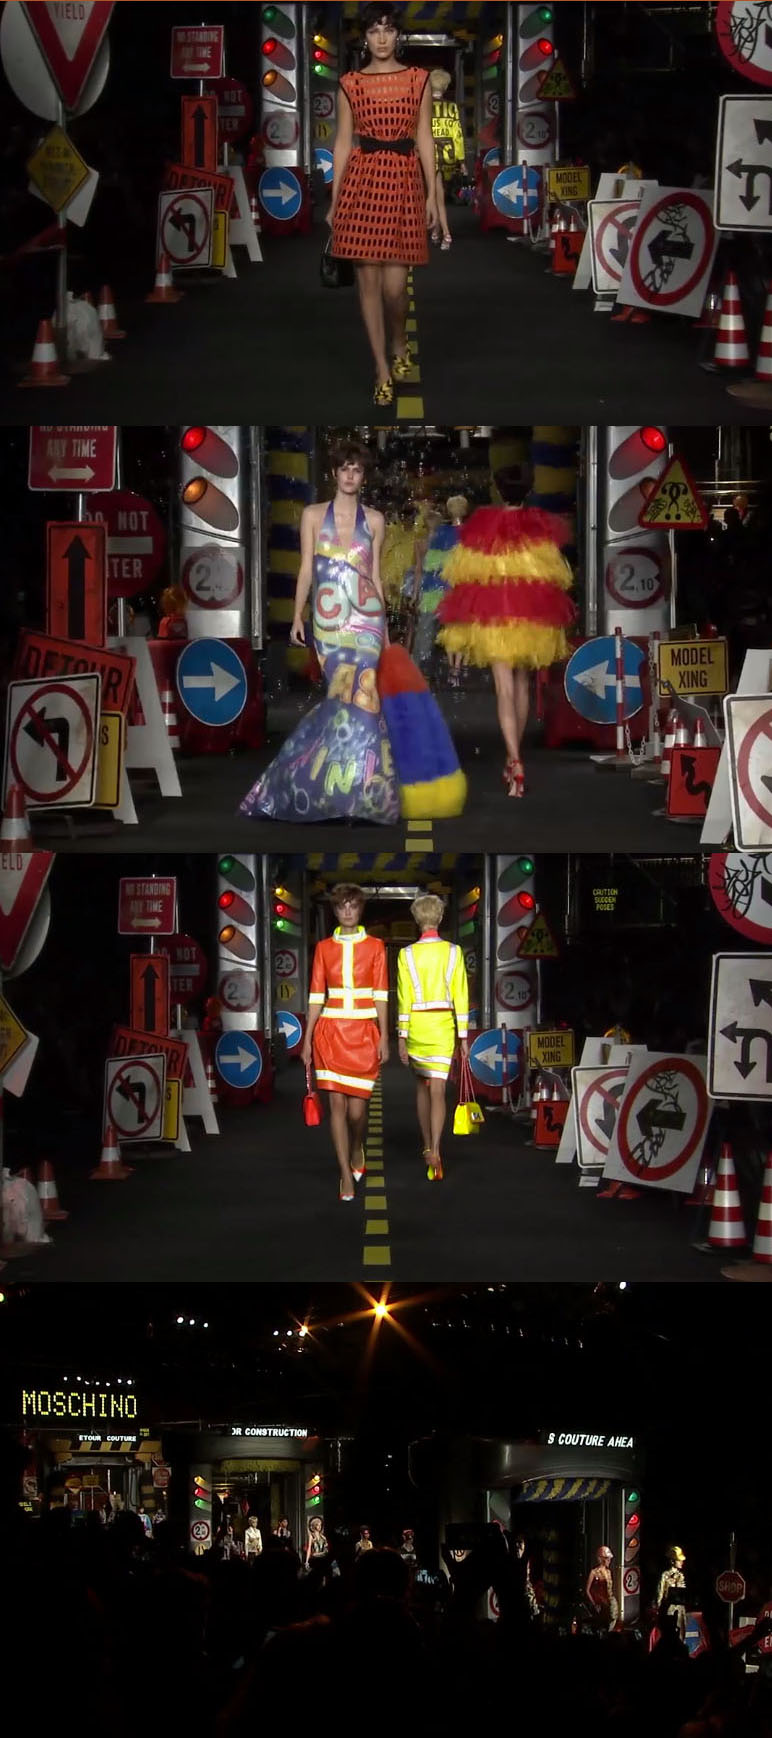 Moschino - Milan Fashion Week